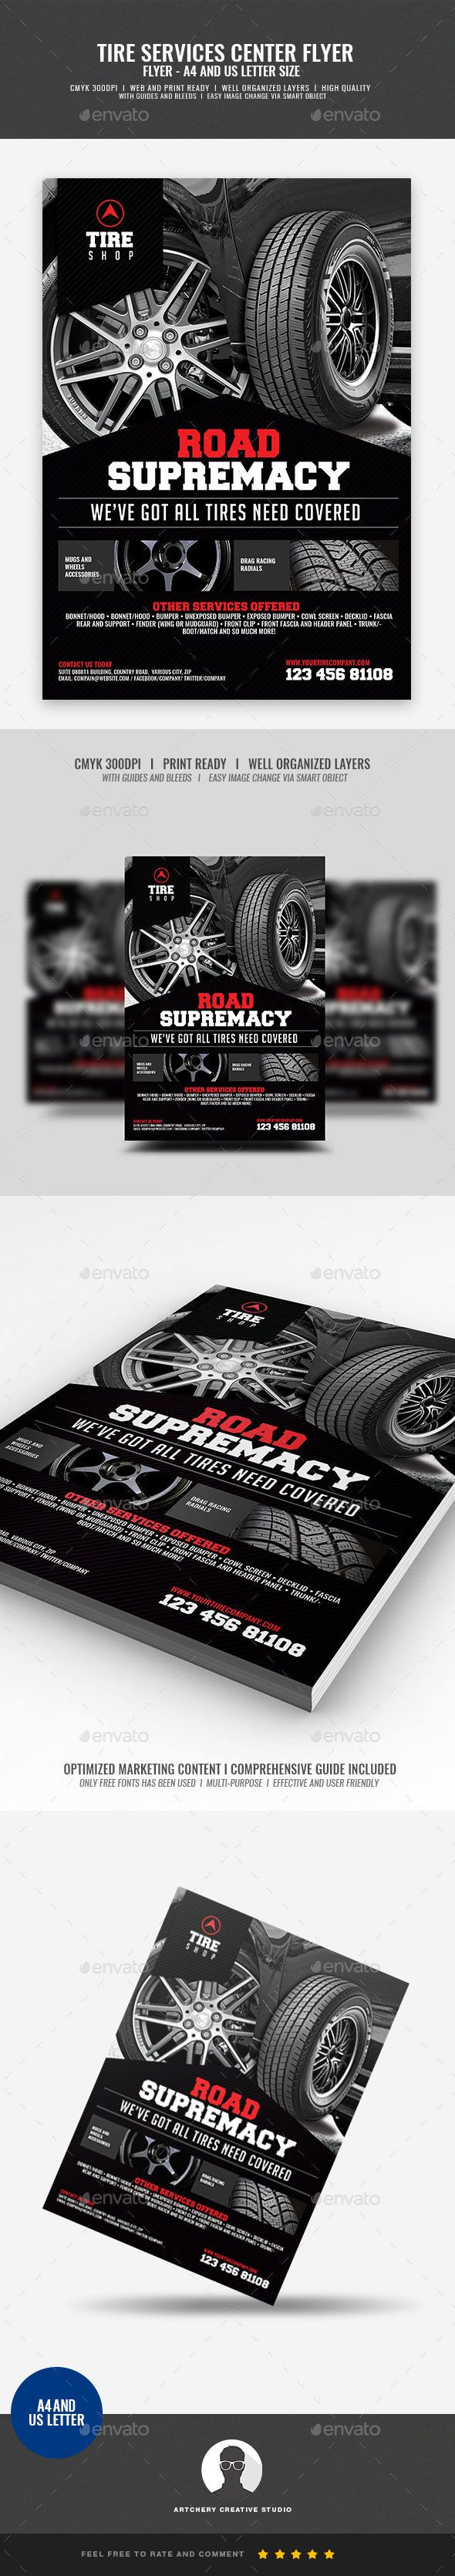 Tire Shop Flyer Tire Shop Flyer Design Template Boost your company¡¯s sales and attract new customers! This Tire Shop Flyer Design Template have been developed to boost your Ultimate Marketing Opportunity and brand/product awareness, Perfect for large and small businesses, well-studied with effective marketing content.A FLYER TEMPLATE THAT HAS A COPY READY MARKETI